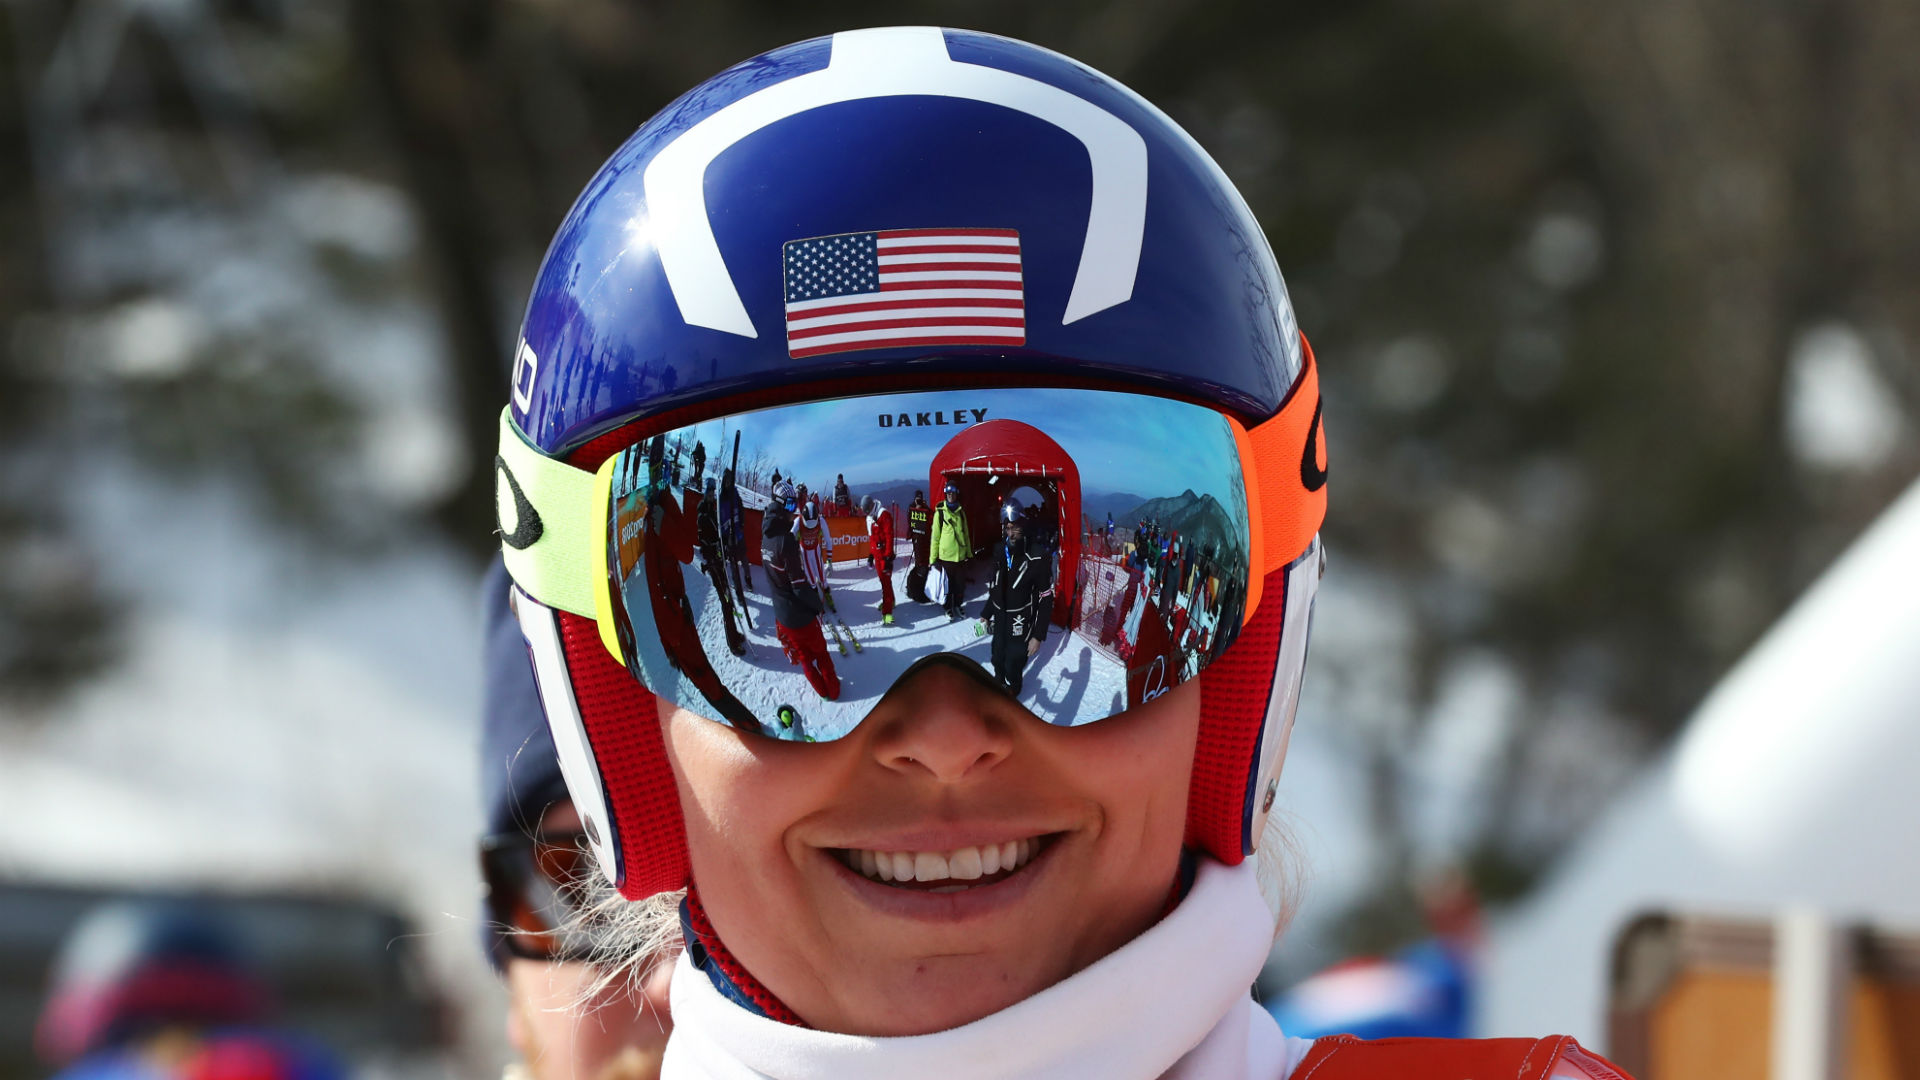 USA's Shiffrin takes silver in women's Alpine combined behind Switzerland's Gisin